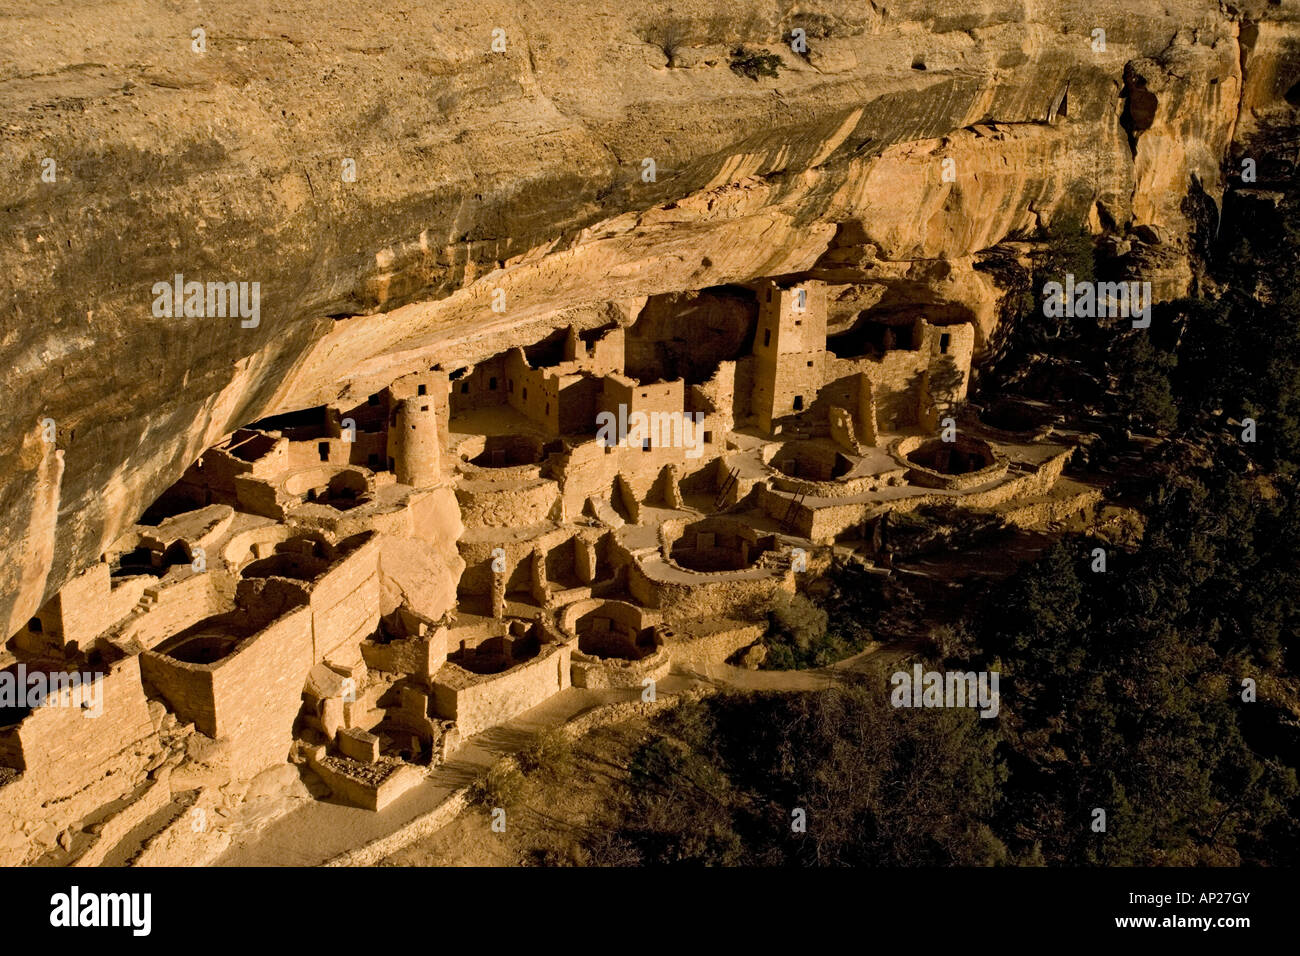 13th century native indian cliff buildings Mesa Verde National Park Cliff Palace the best known of the cliff dwellings - Stock Image